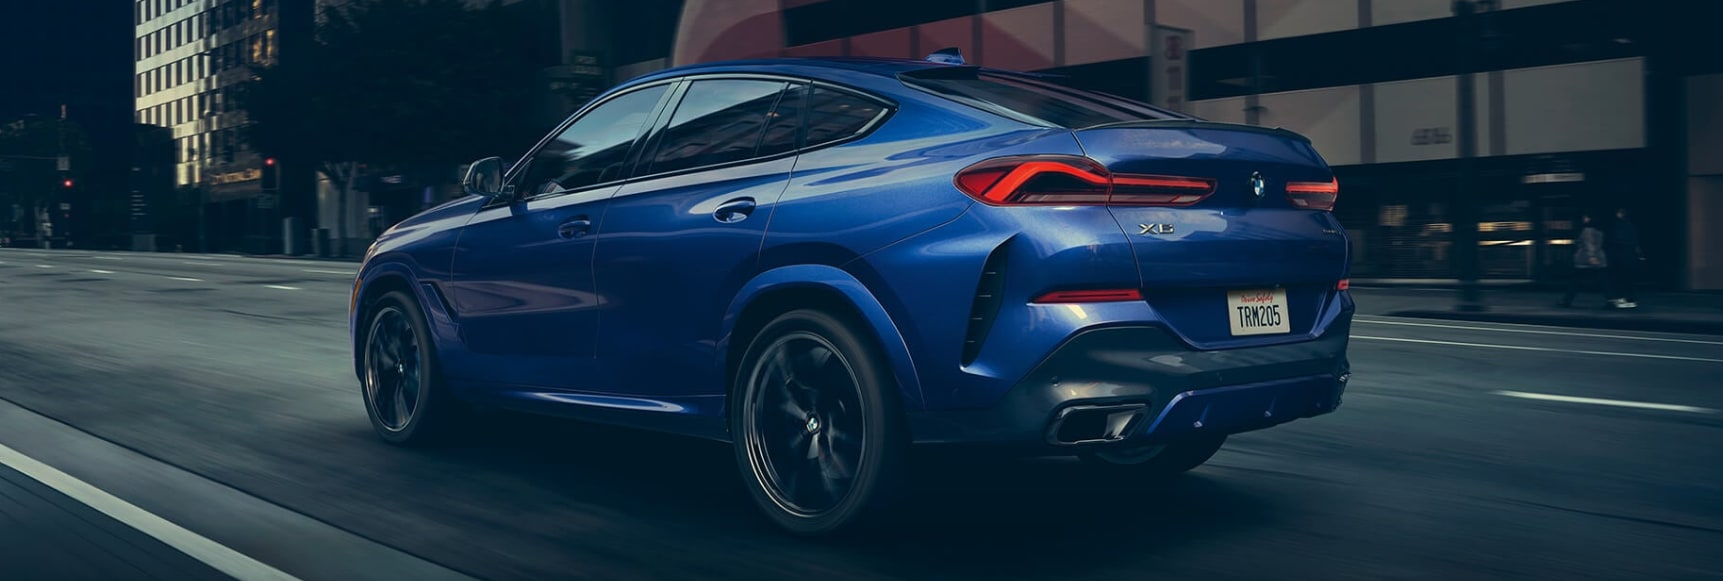 New BMW X6 Sports Activity Coupe® Model Information | The BMW Store in Cincinnati